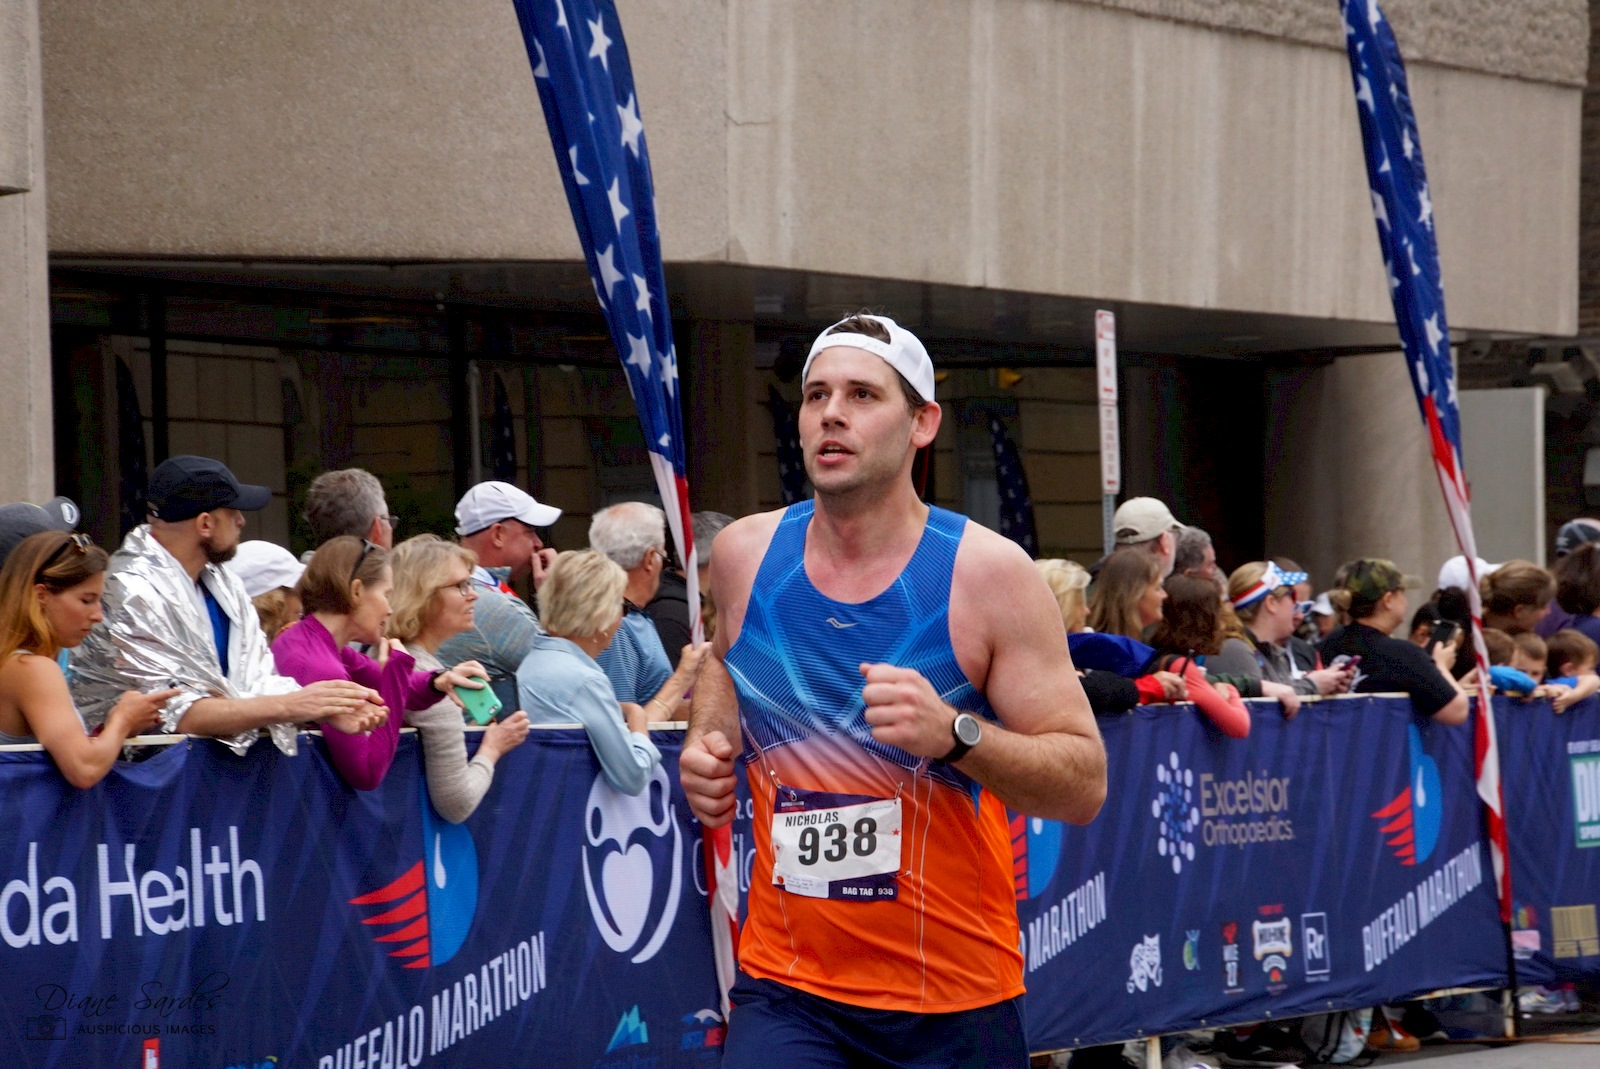 Buffalo Marathon weekend 1101.jpg